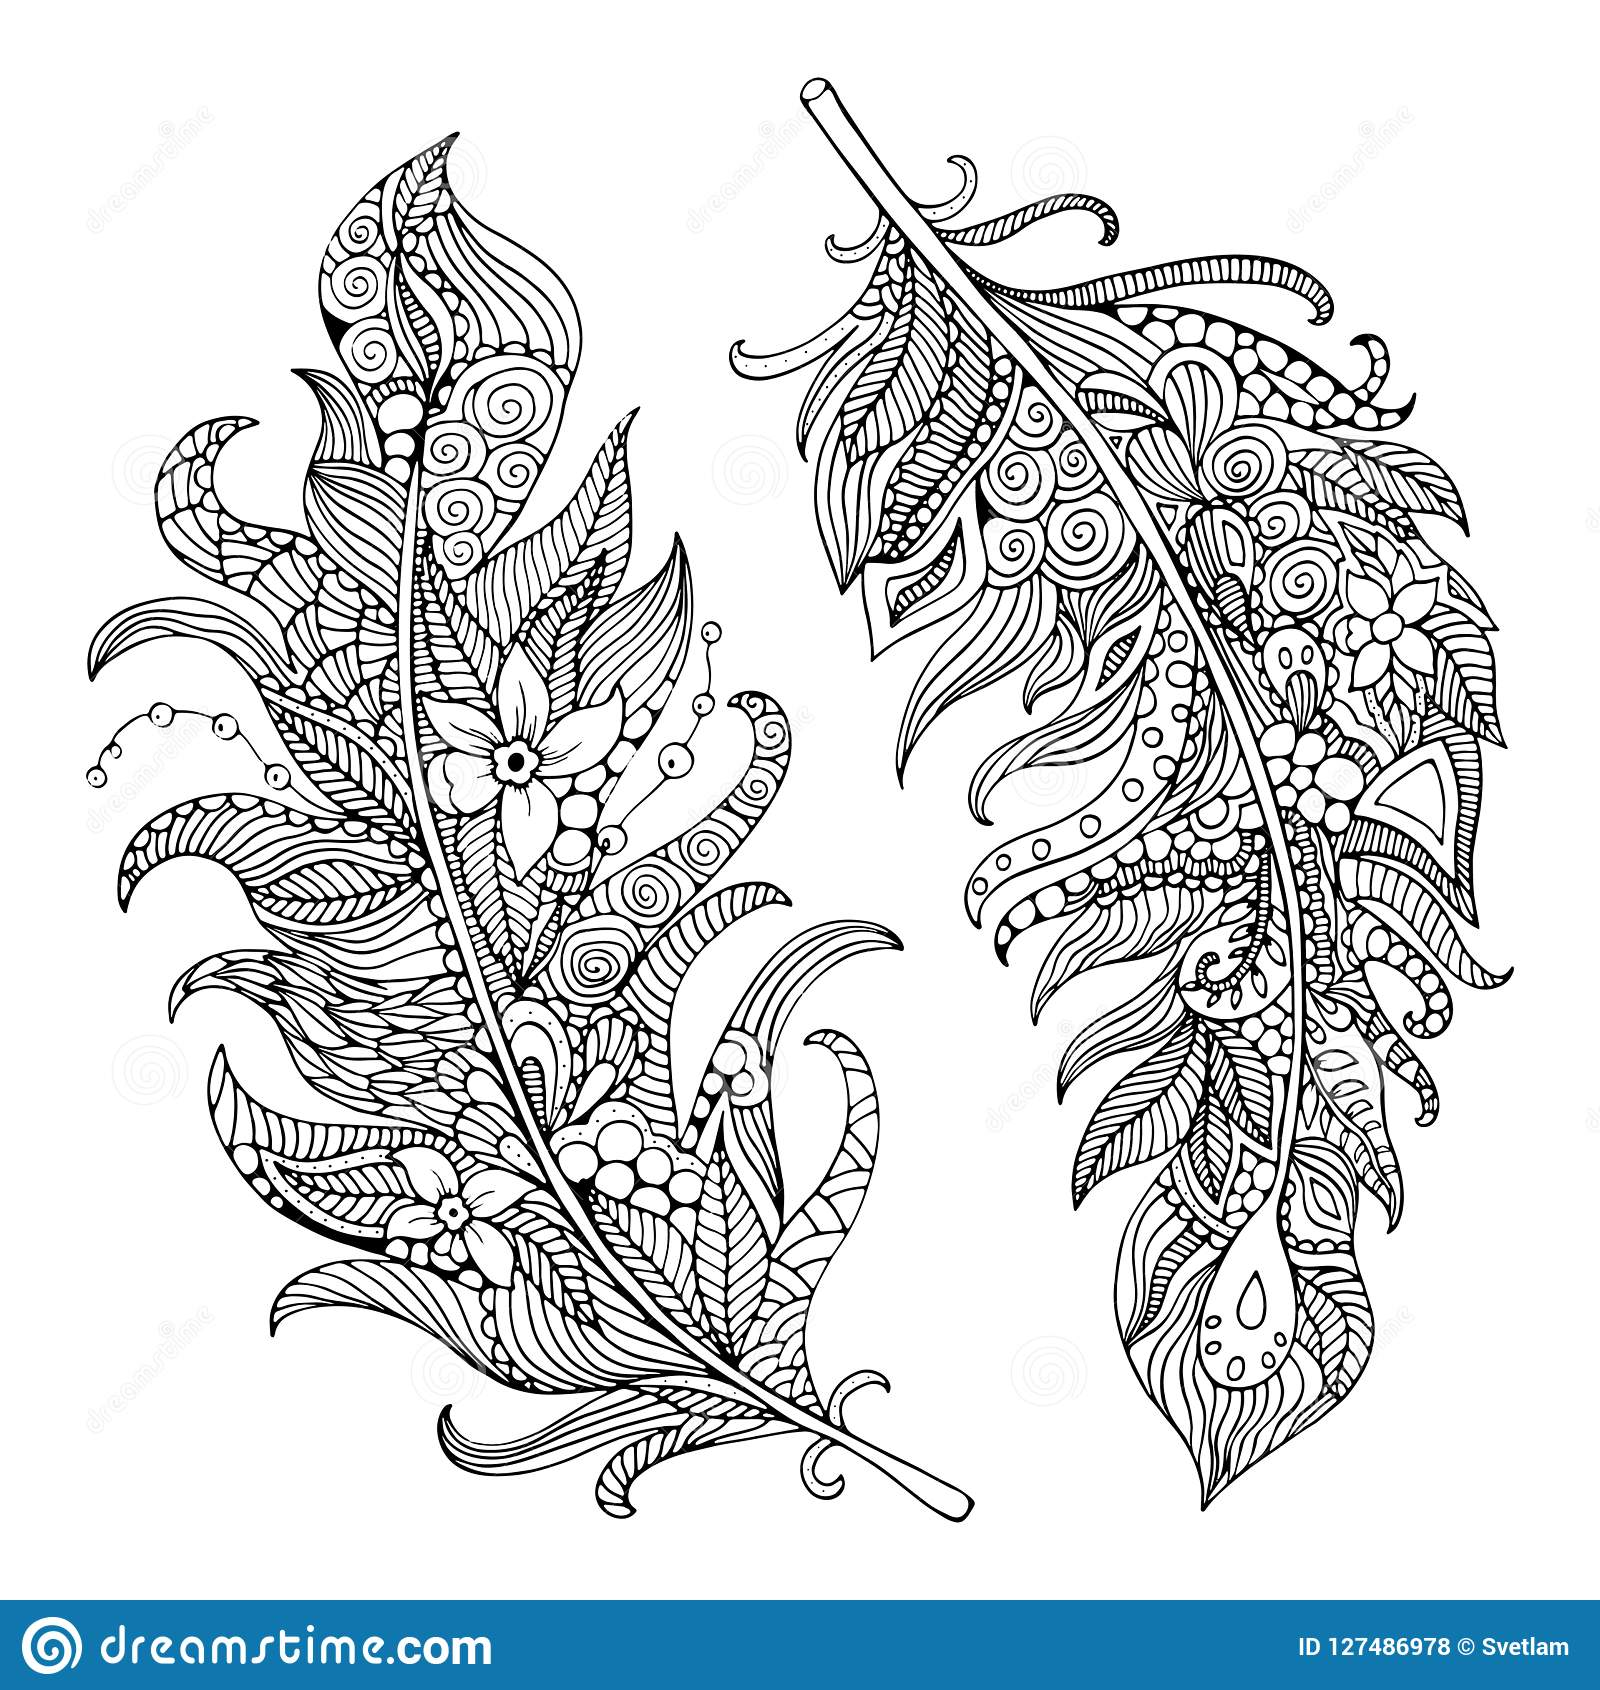 Feather coloring page. stock illustration. Illustration of animal ...